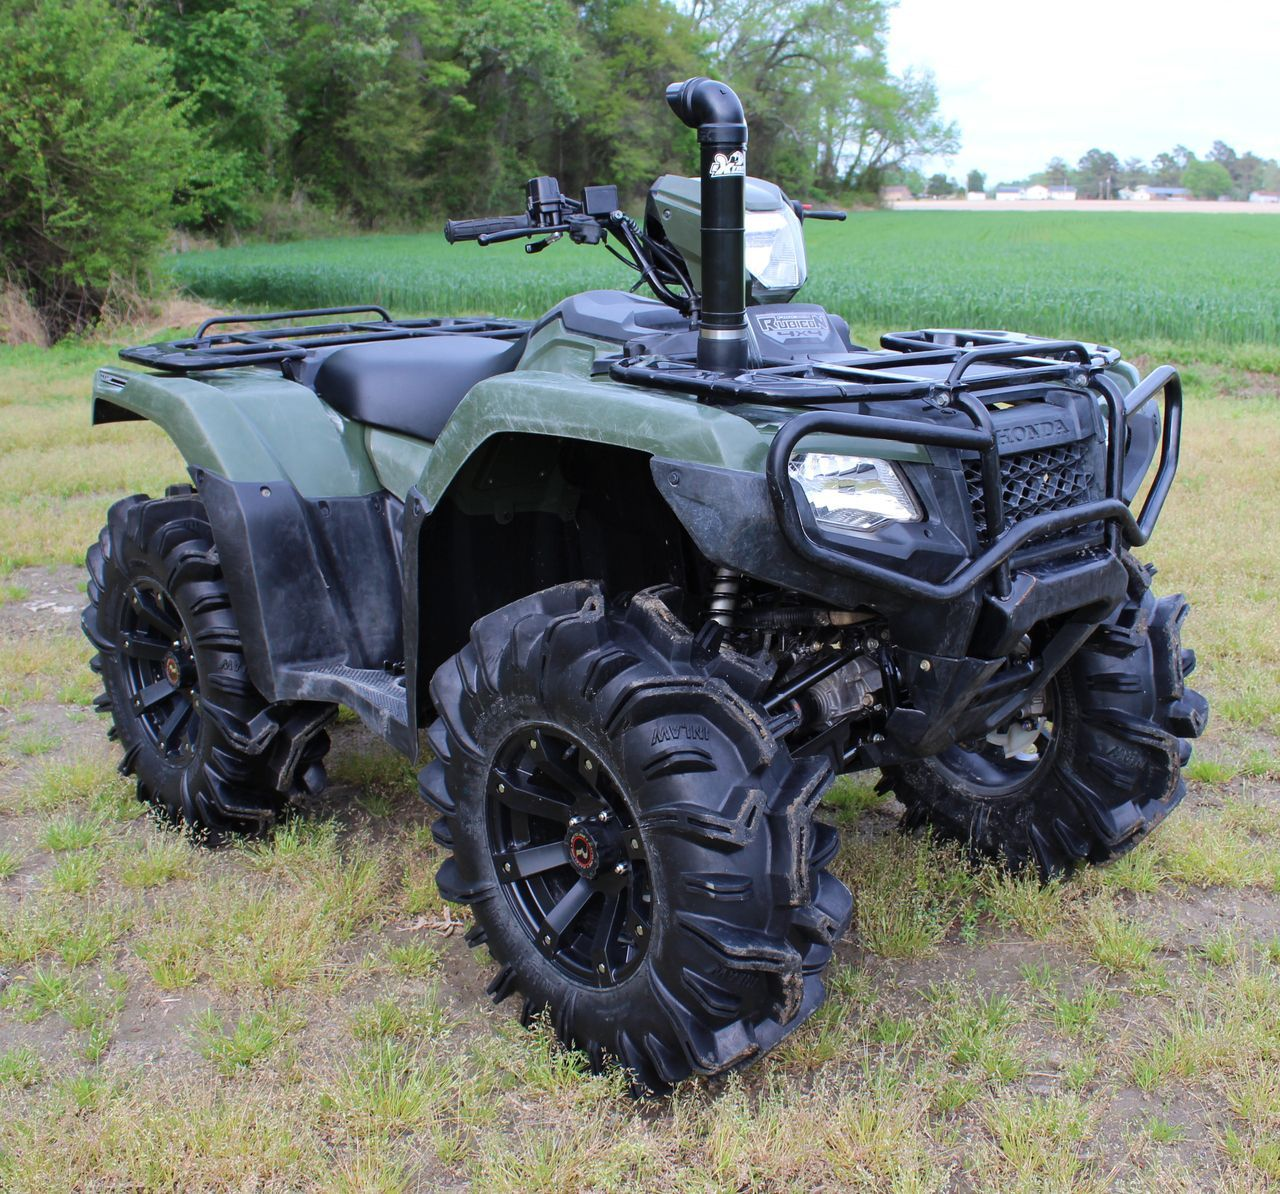 Pin By Janessa On My Saves In 2020 Atv Snorkels Atv Quads